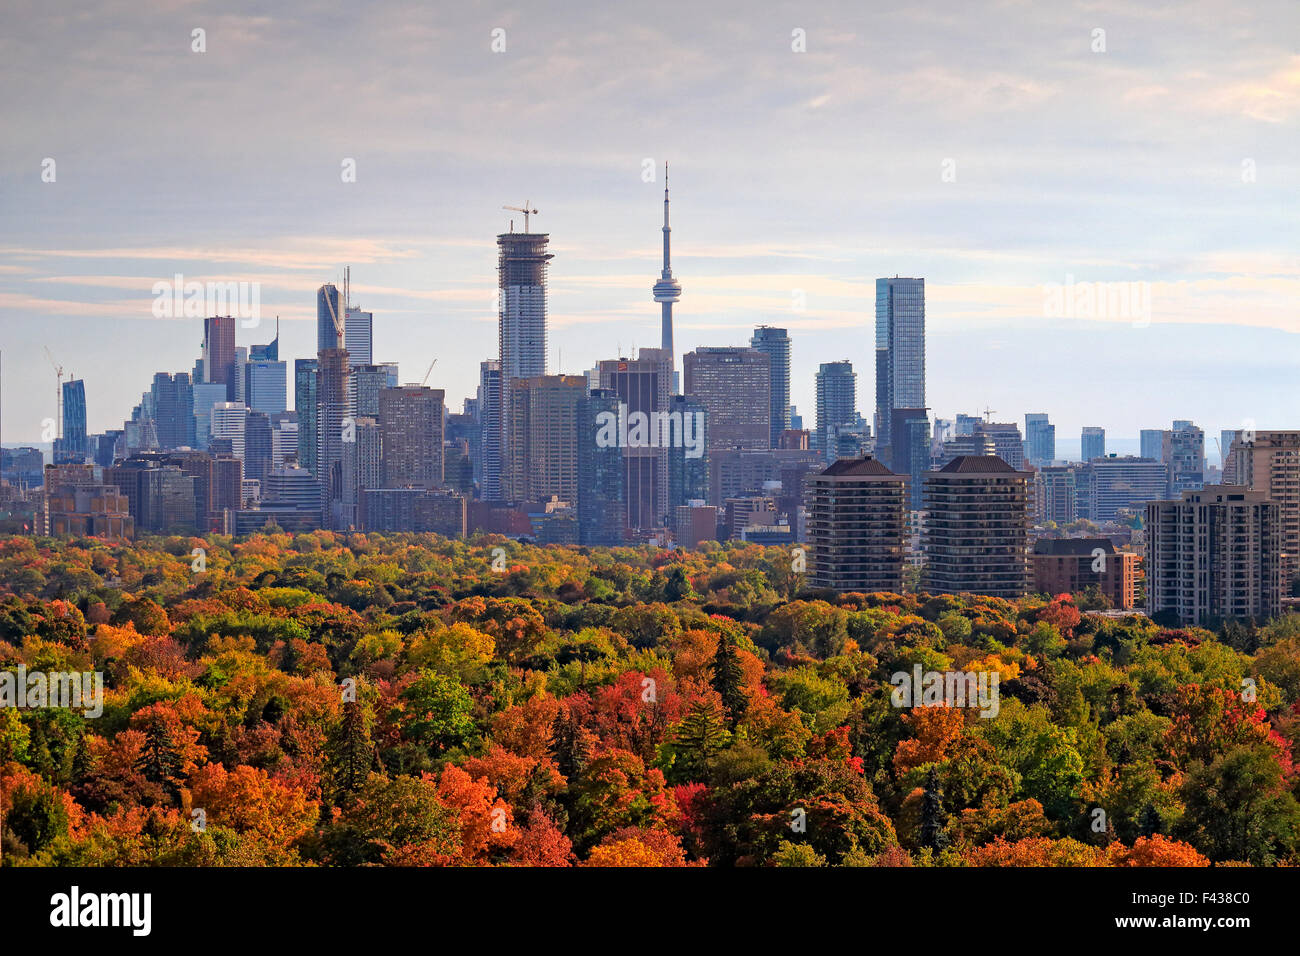 Toronto city skyline with major landmark buildings including CN Tower and downtown officer skyscrapers with midtown - Stock Image